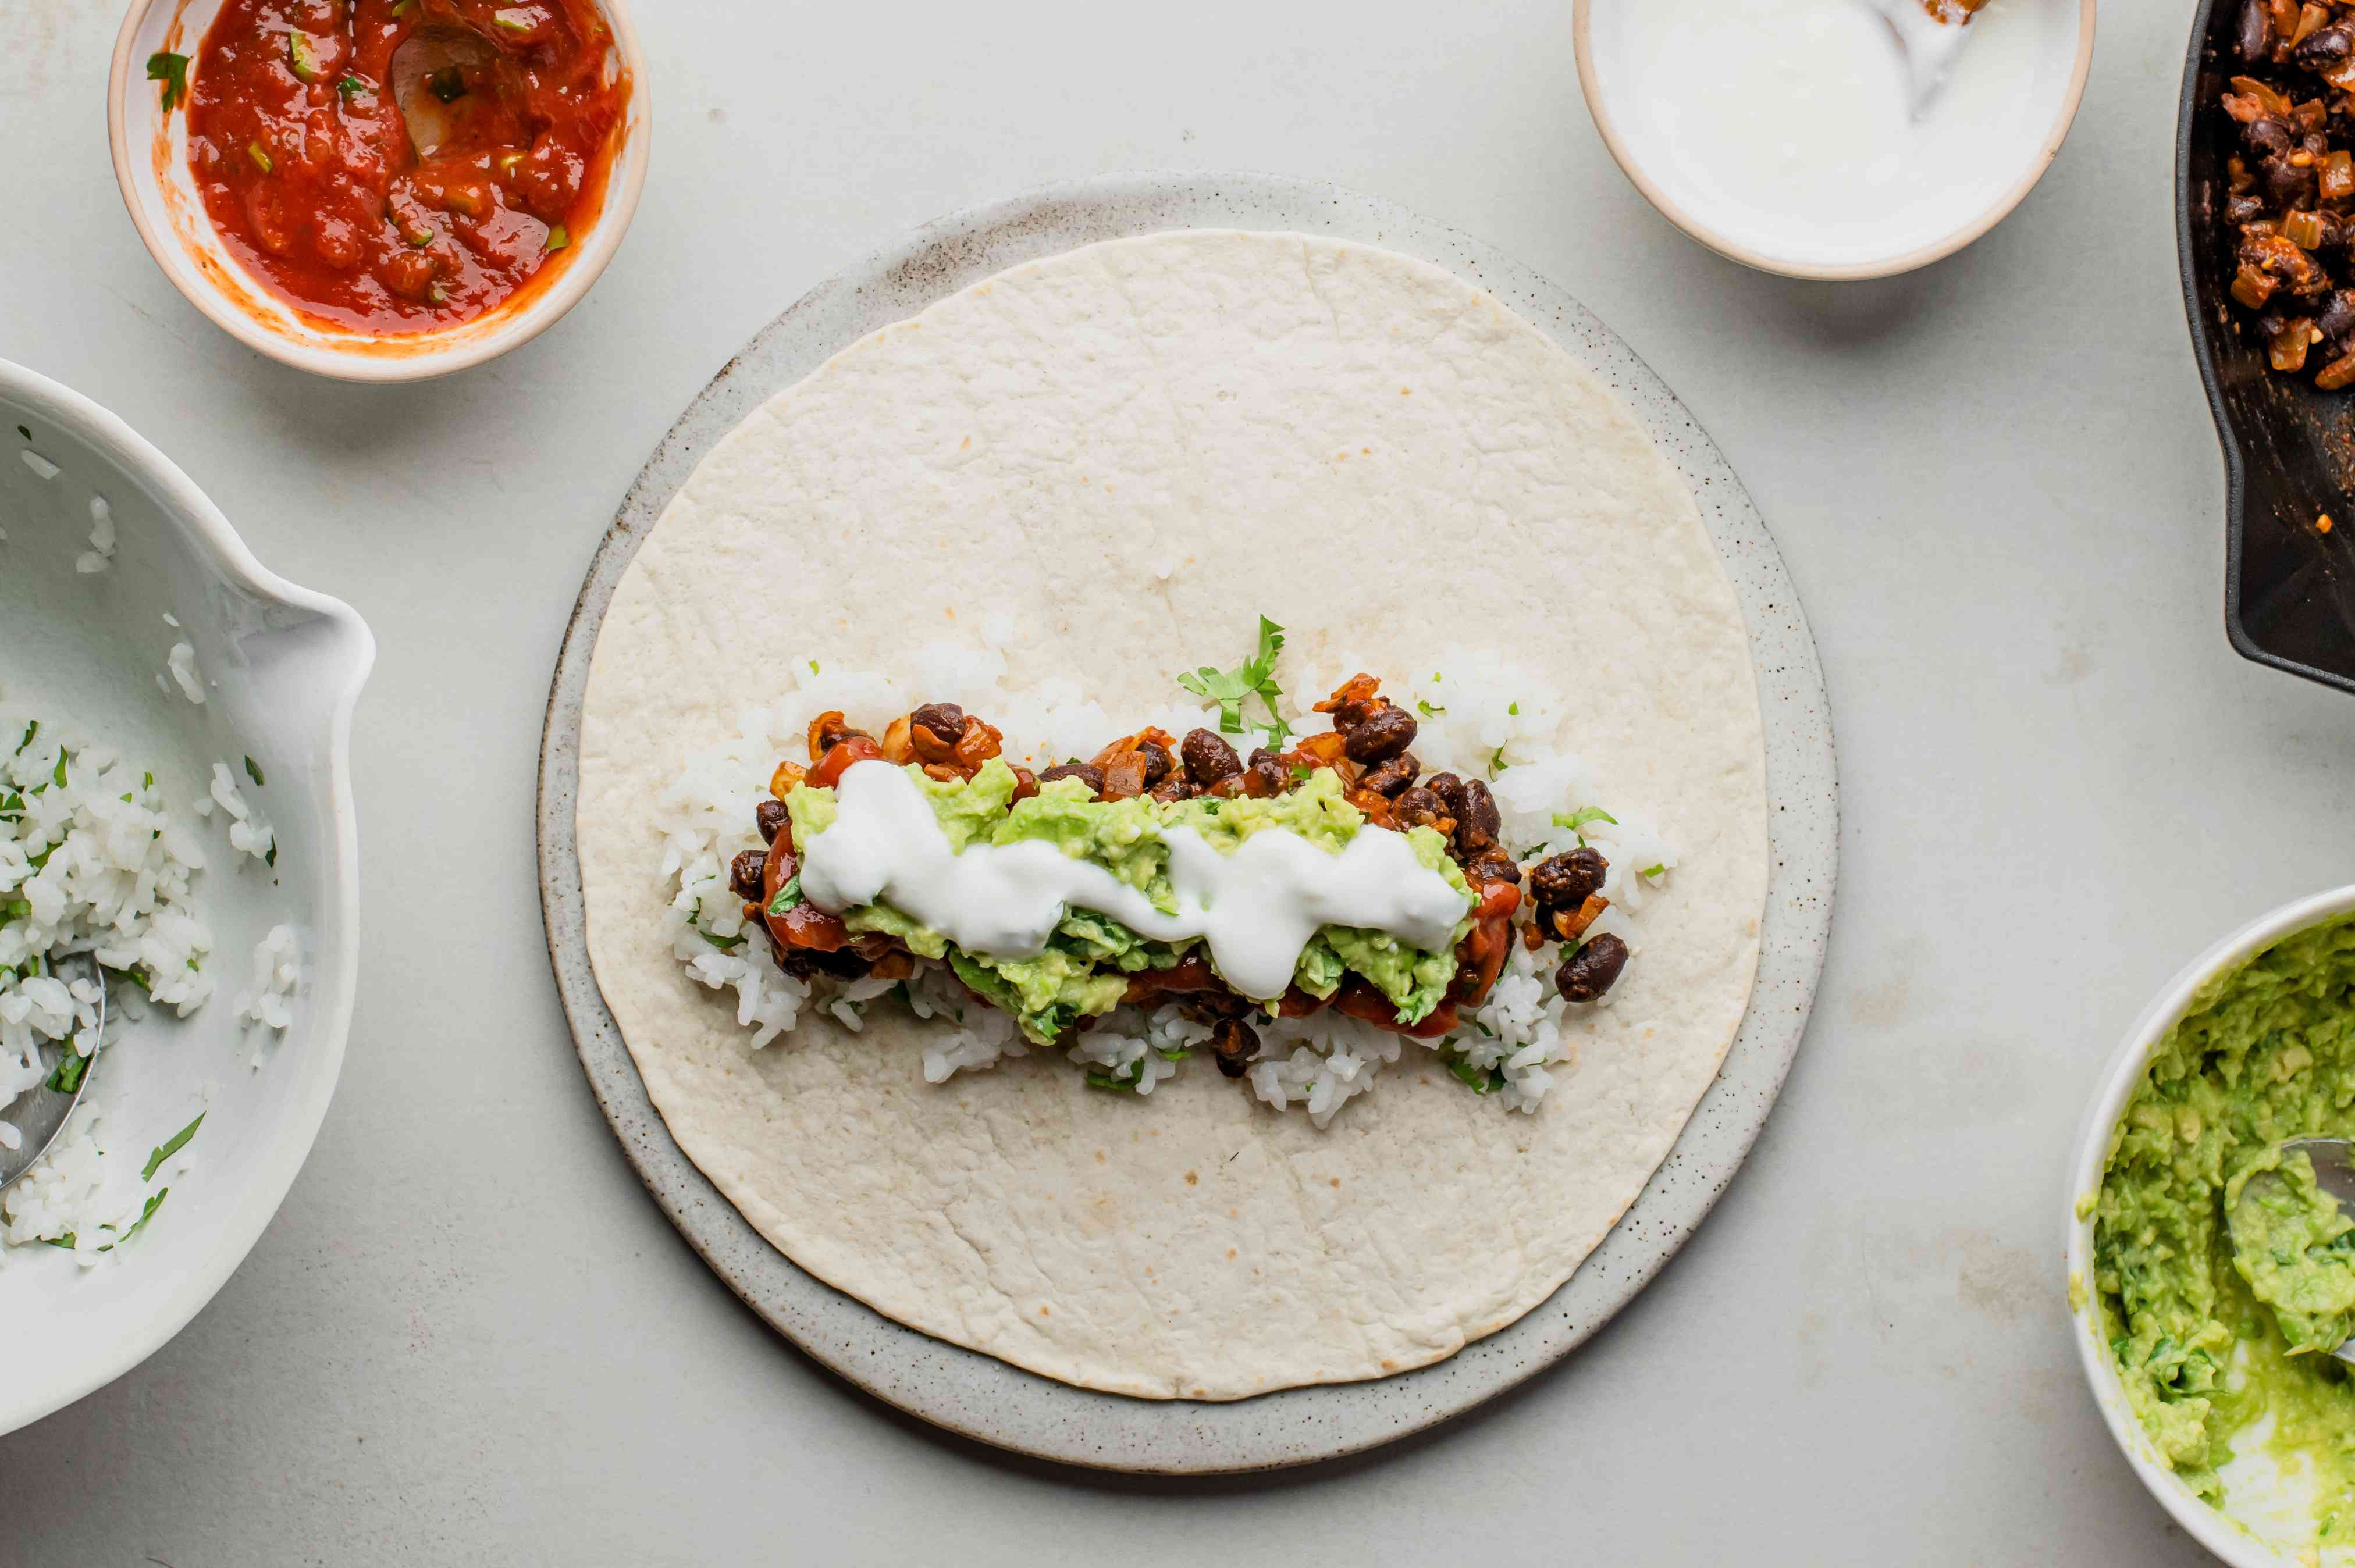 Cilantro-lime rice and black bean mix are added to flour tortillas